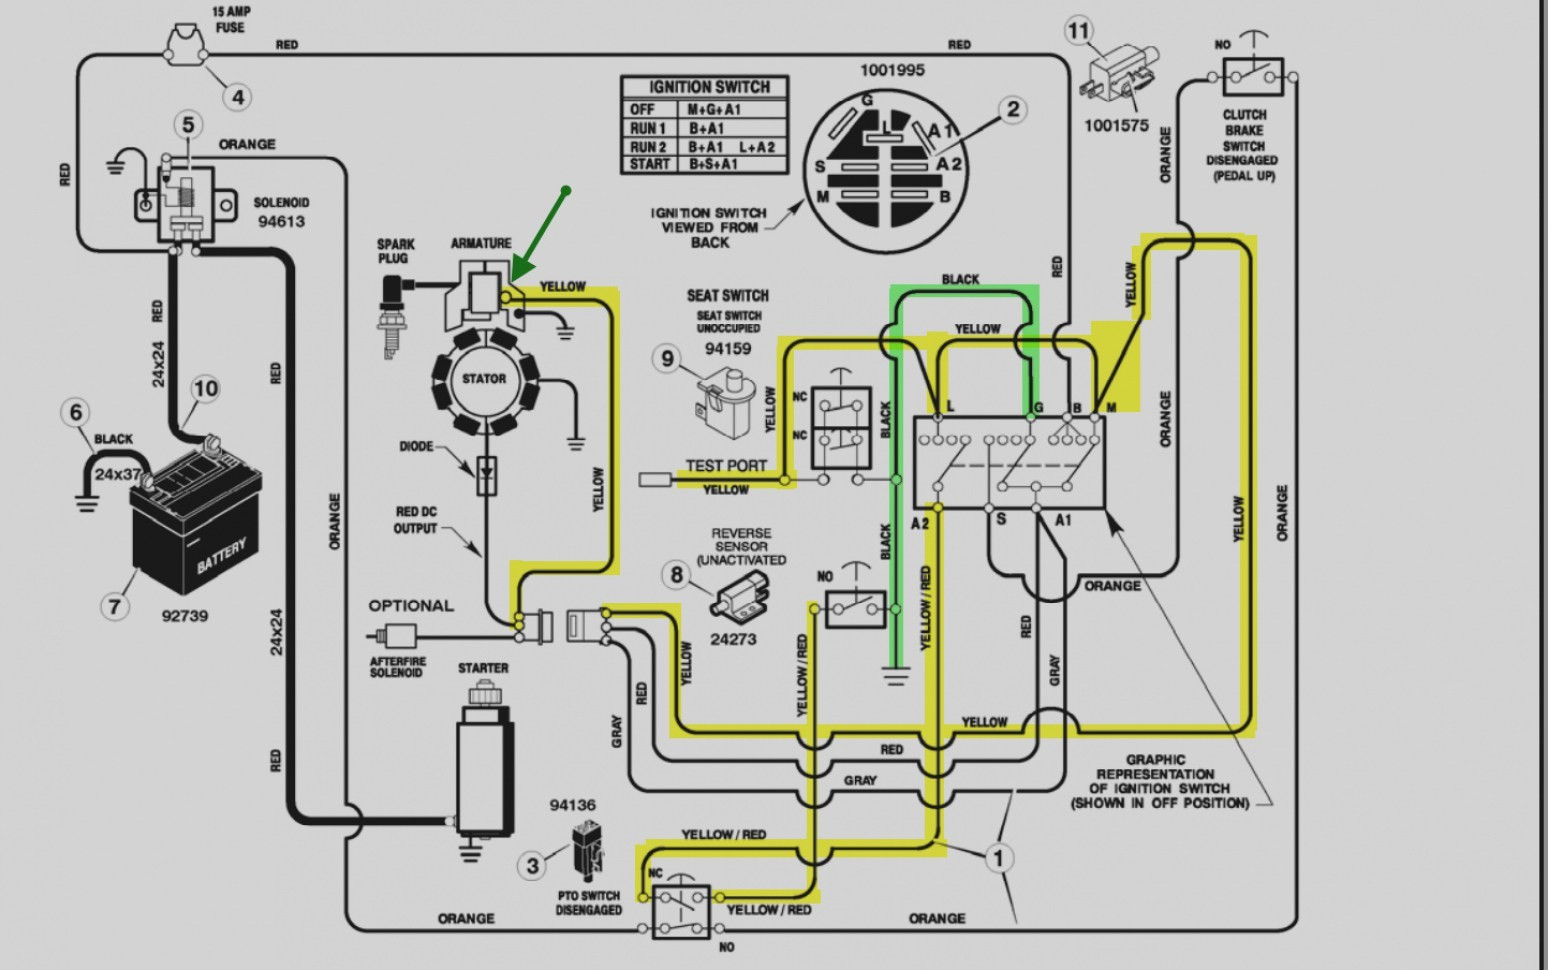 27 hp briggs and stratton wiring diagram enthusiast wiring diagrams u2022  rh rasalibre co Briggs Stratton 1 2 HP Wiring Briggs and Stratton 18 HP  Wiring ...